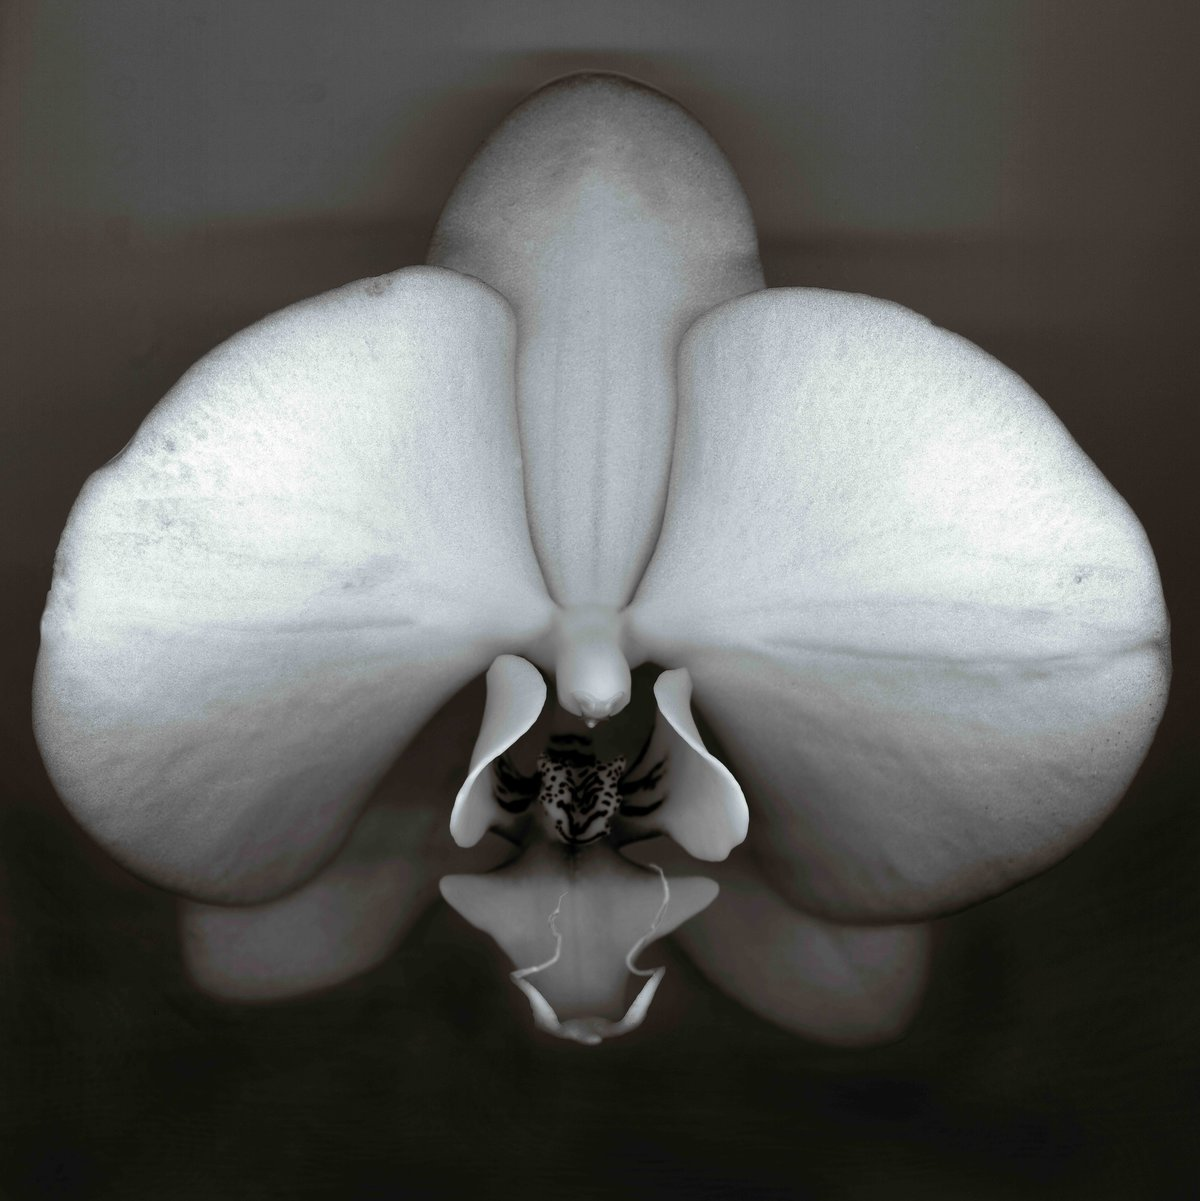 fine-art-photographer-san-francisco-bay-area-camille-rogine-scanner-orchid003